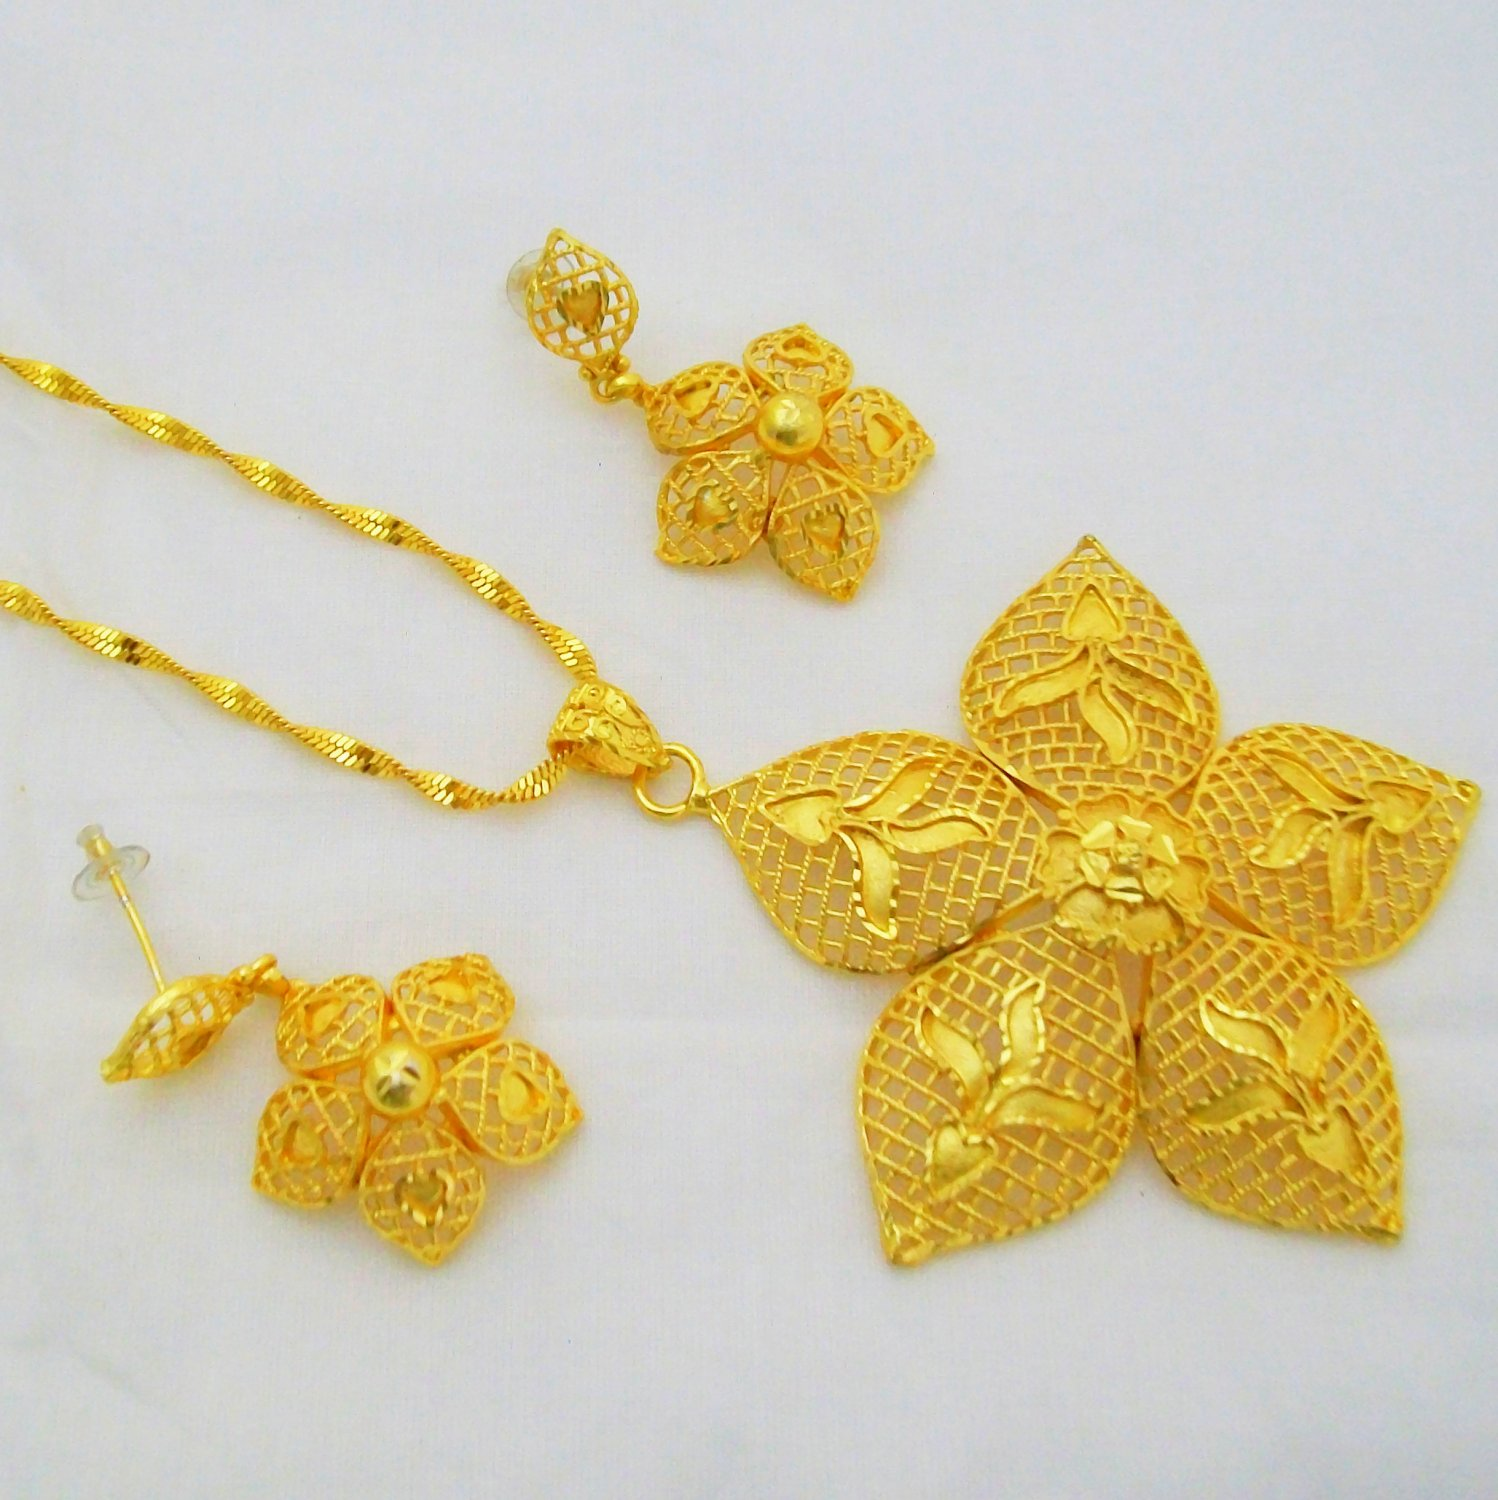 Flower Yellow Gold Plated Metal Indian Filigree Chain Pendant Necklace Earring Jewelry Set